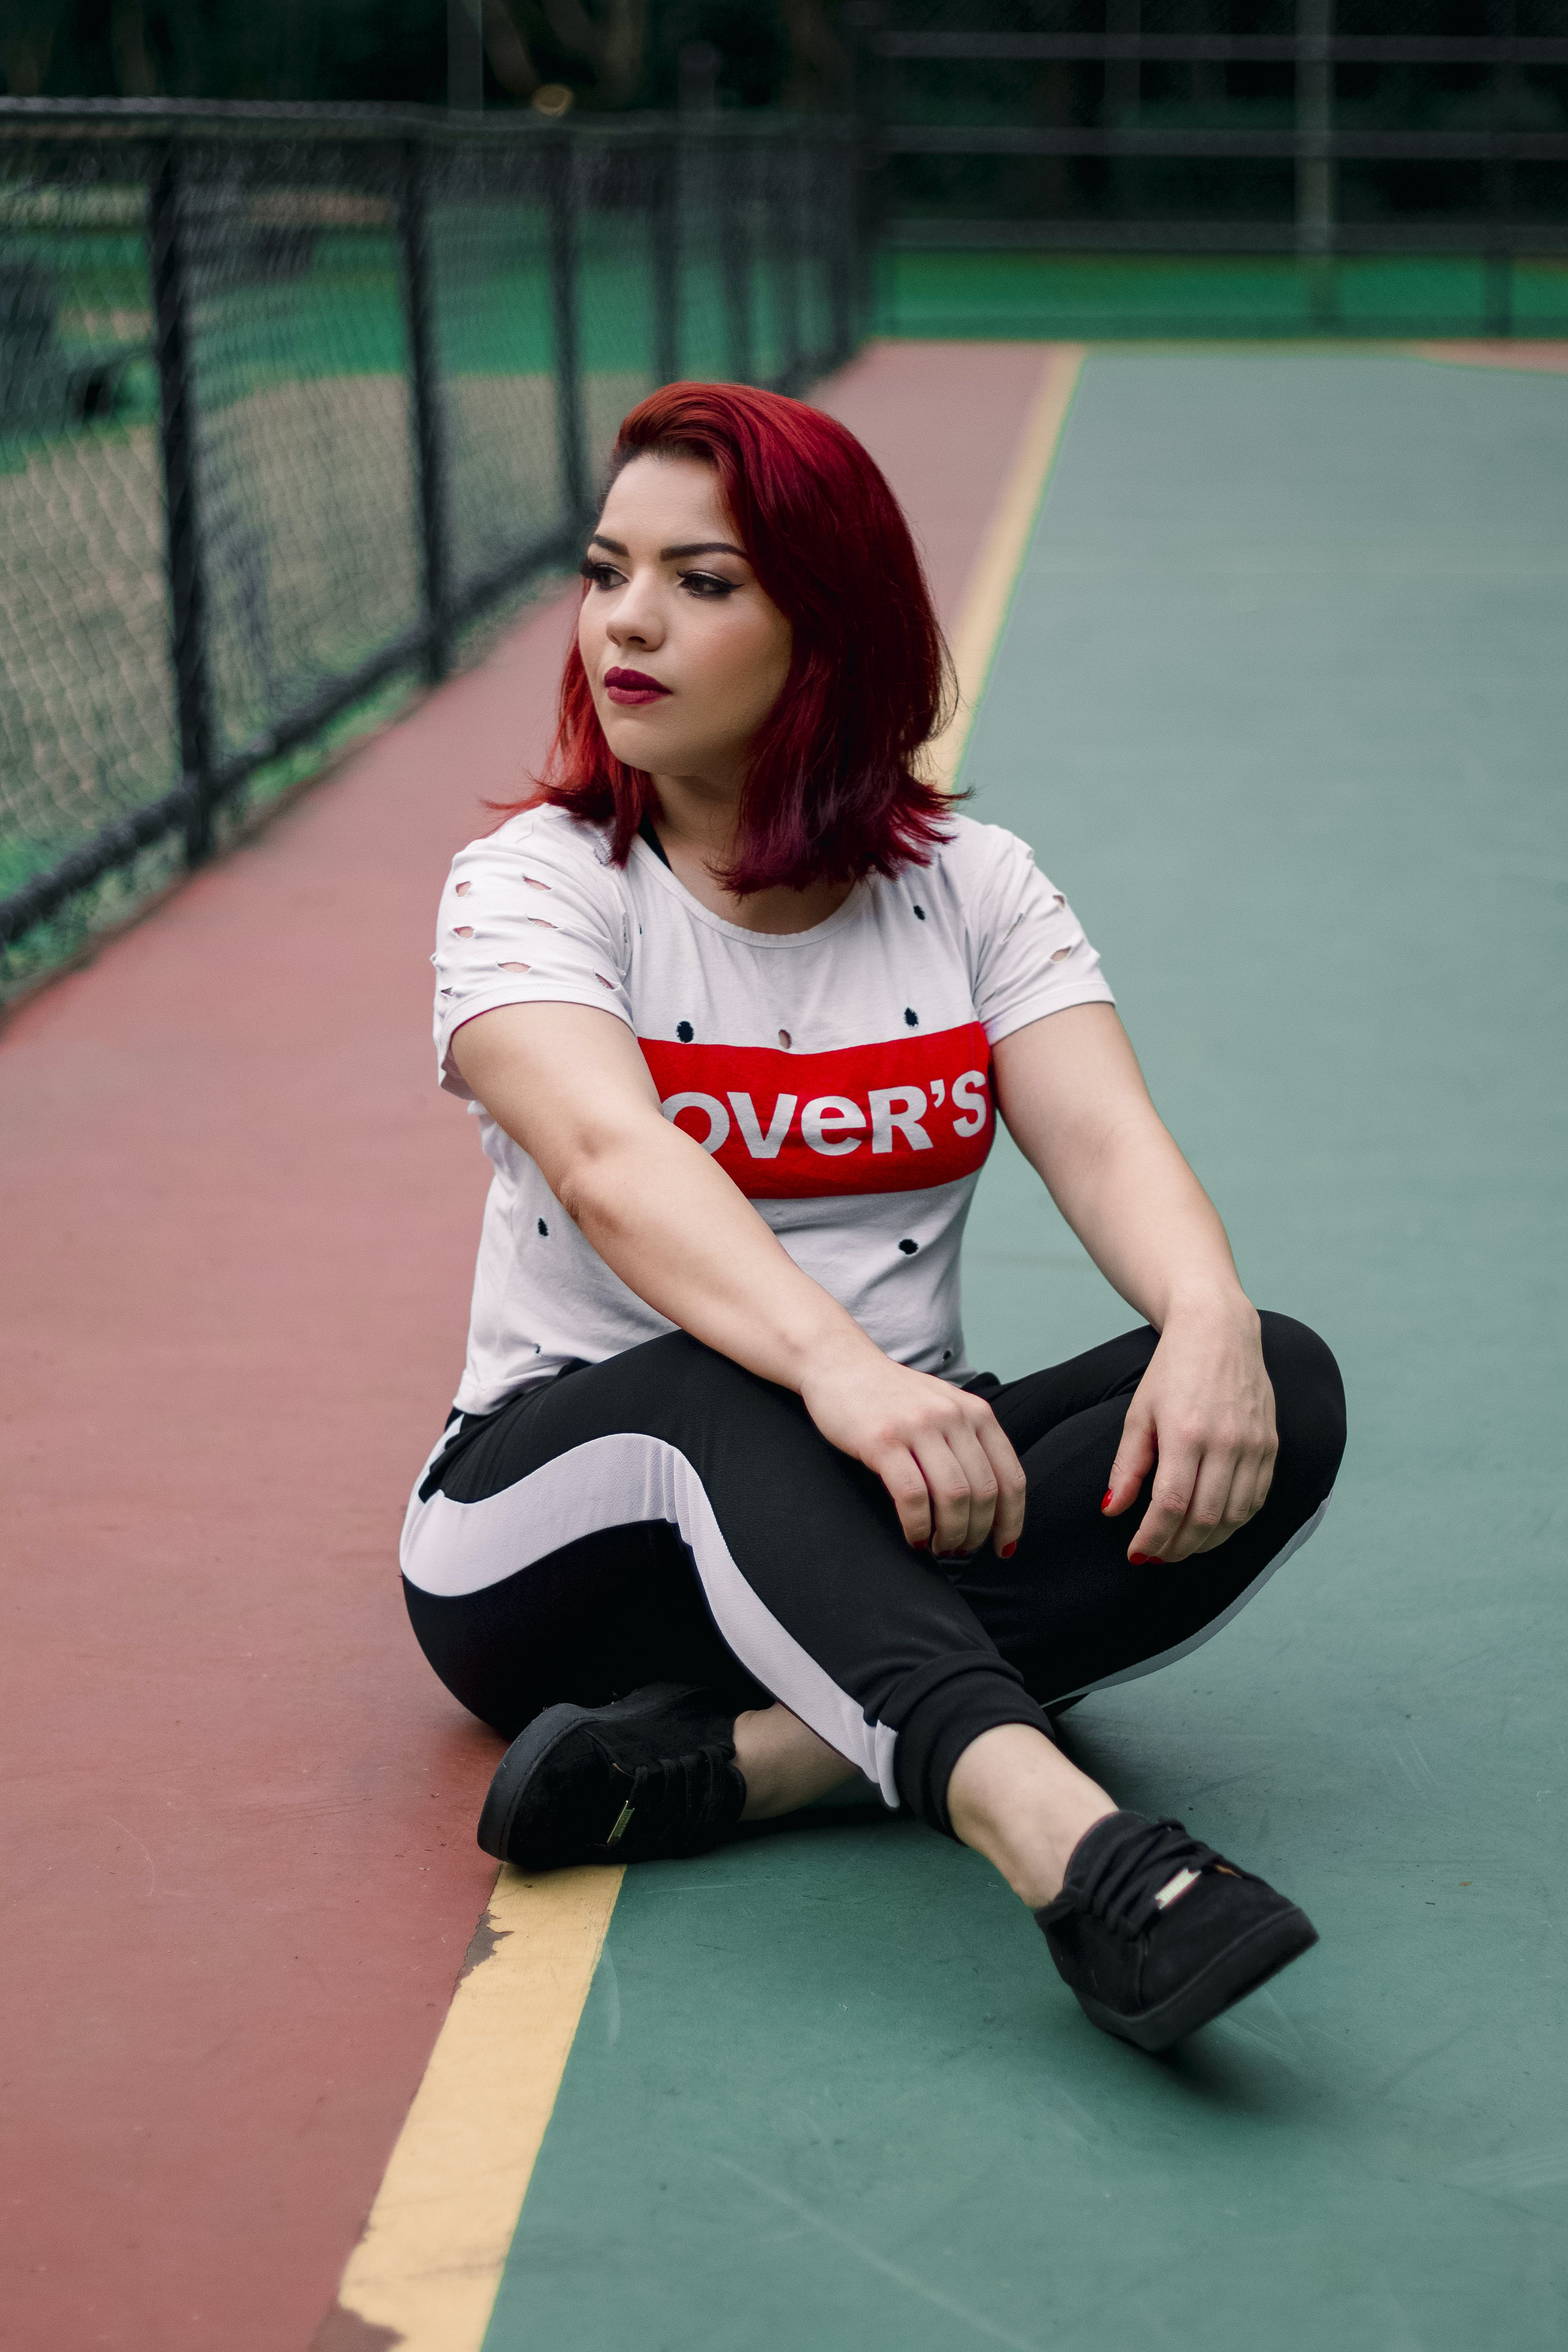 Woman Wearing Black And White Track Pants Sitting On Ground